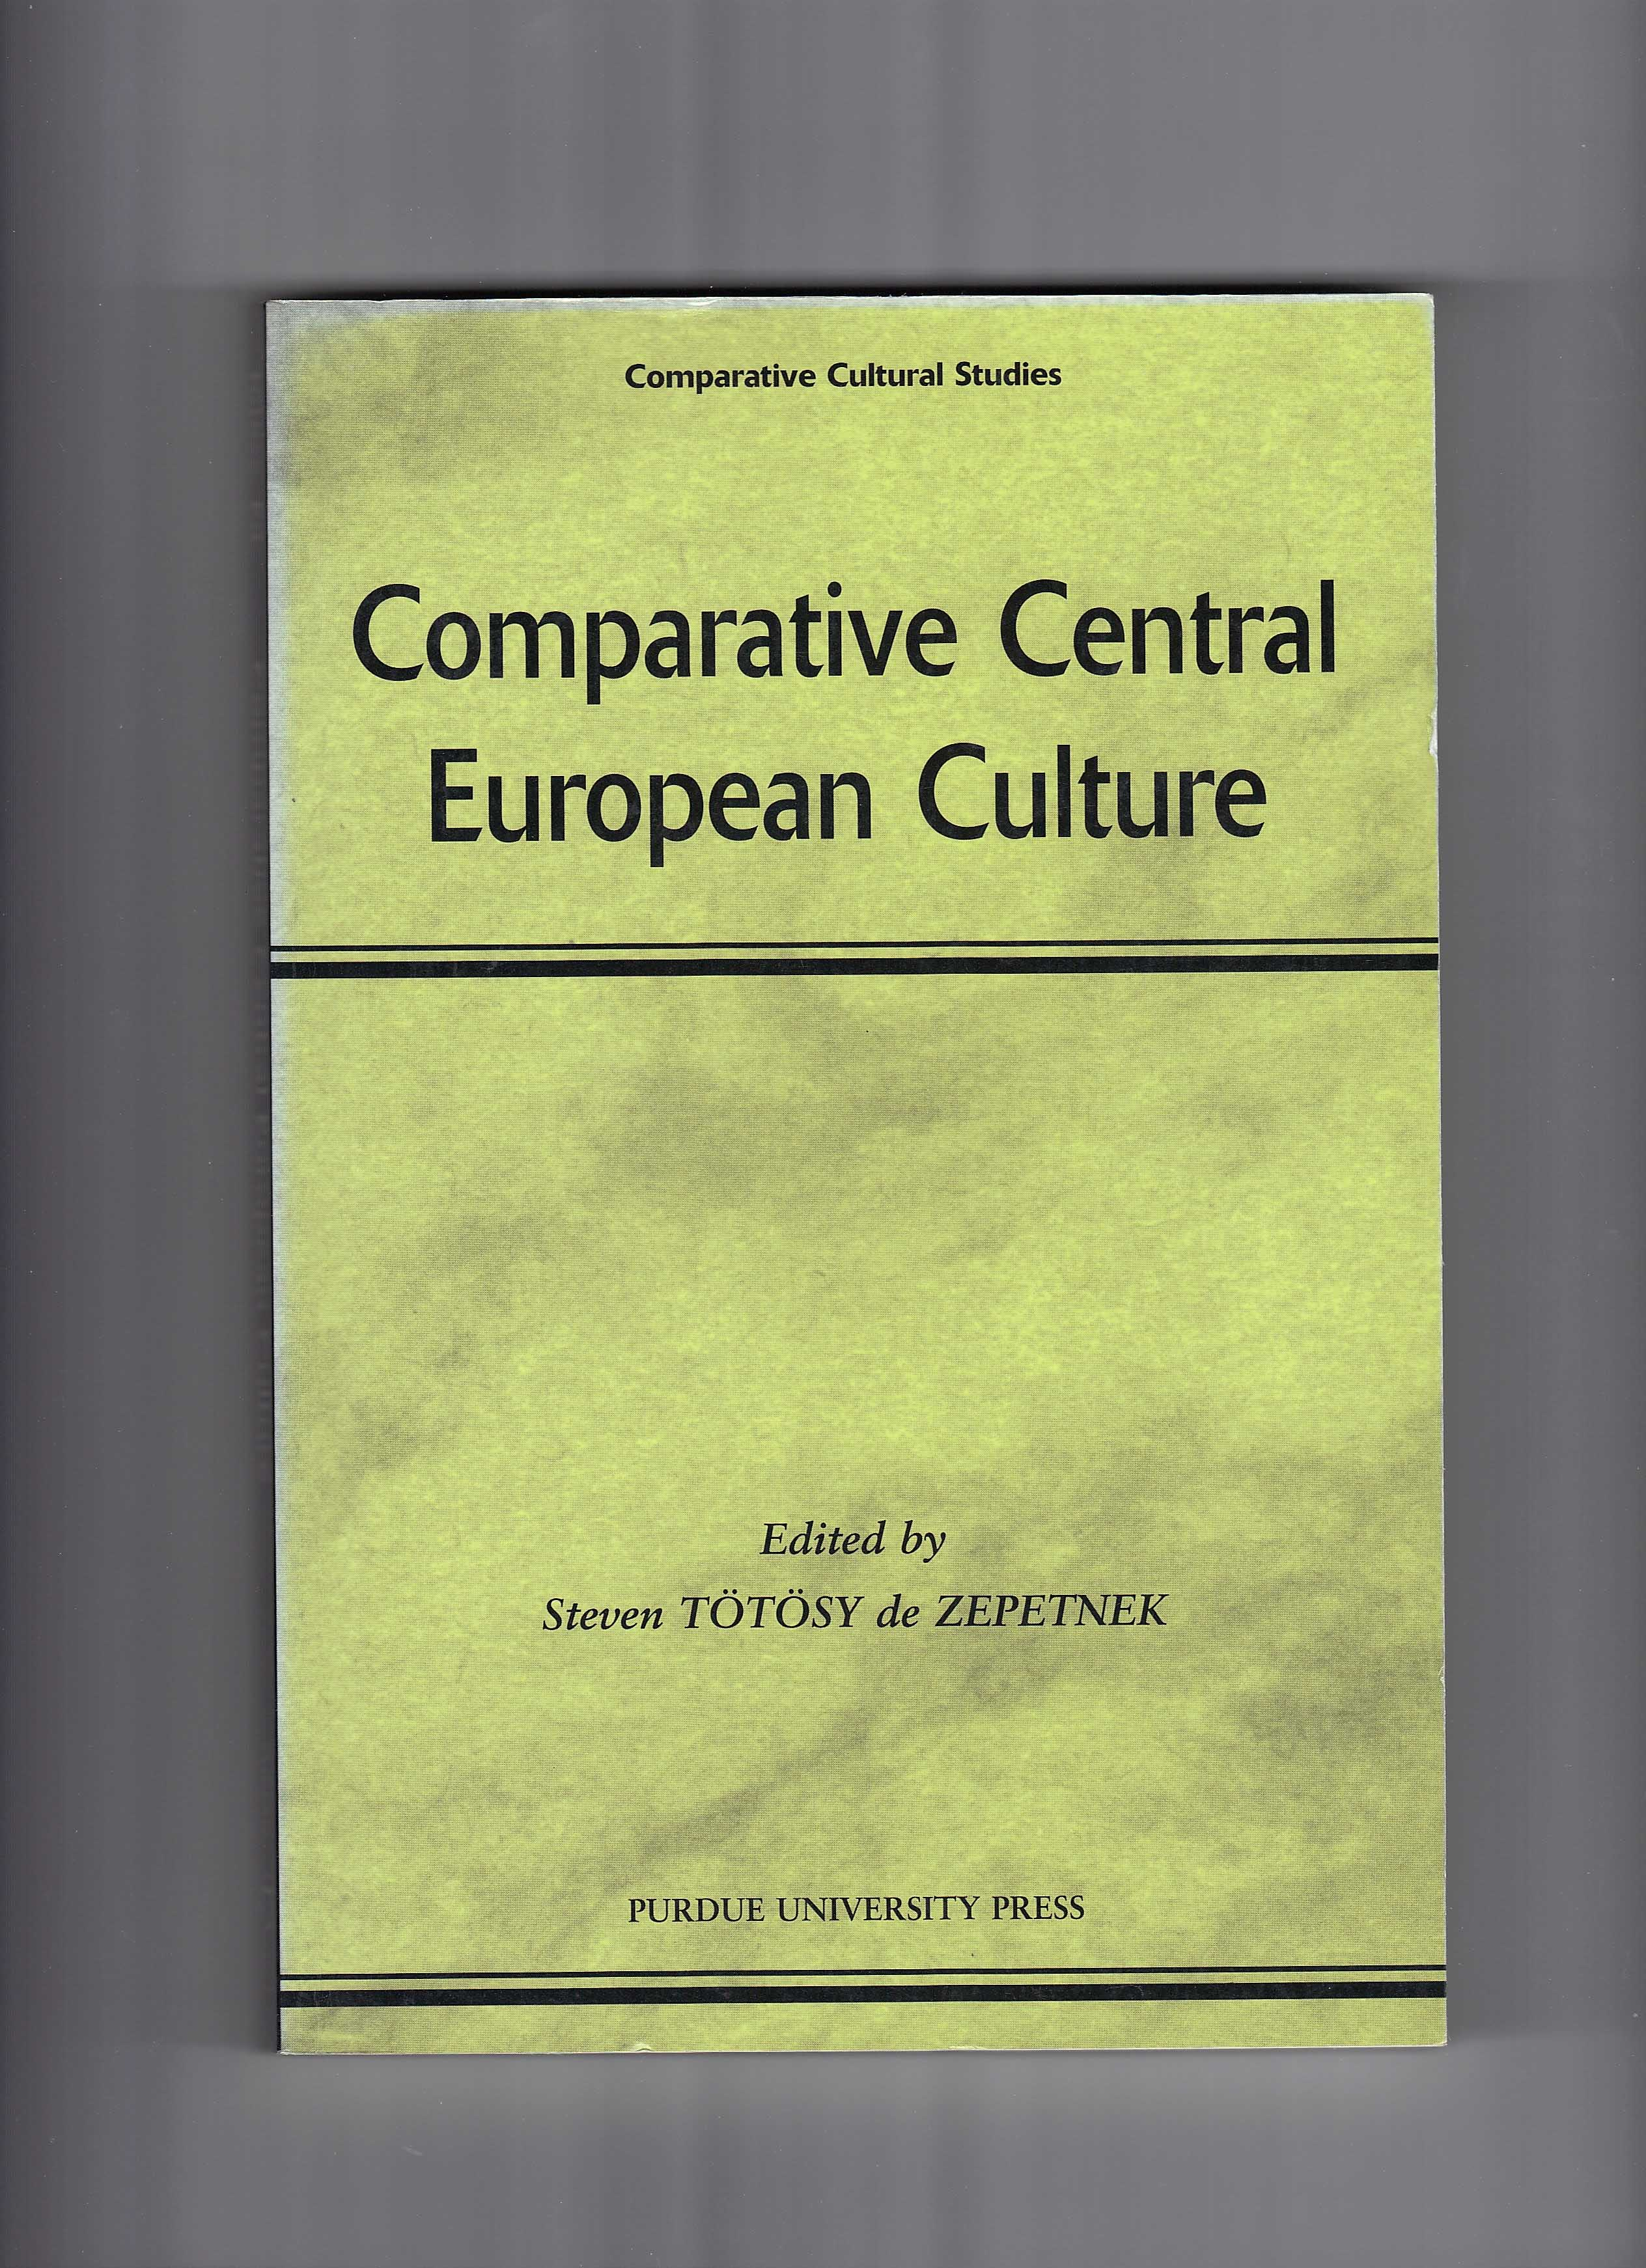 Comparative Central European Culture. Ed. Steven T�t�sy de Zepetnek. West Lafayette: Purdue University Press, 2002.